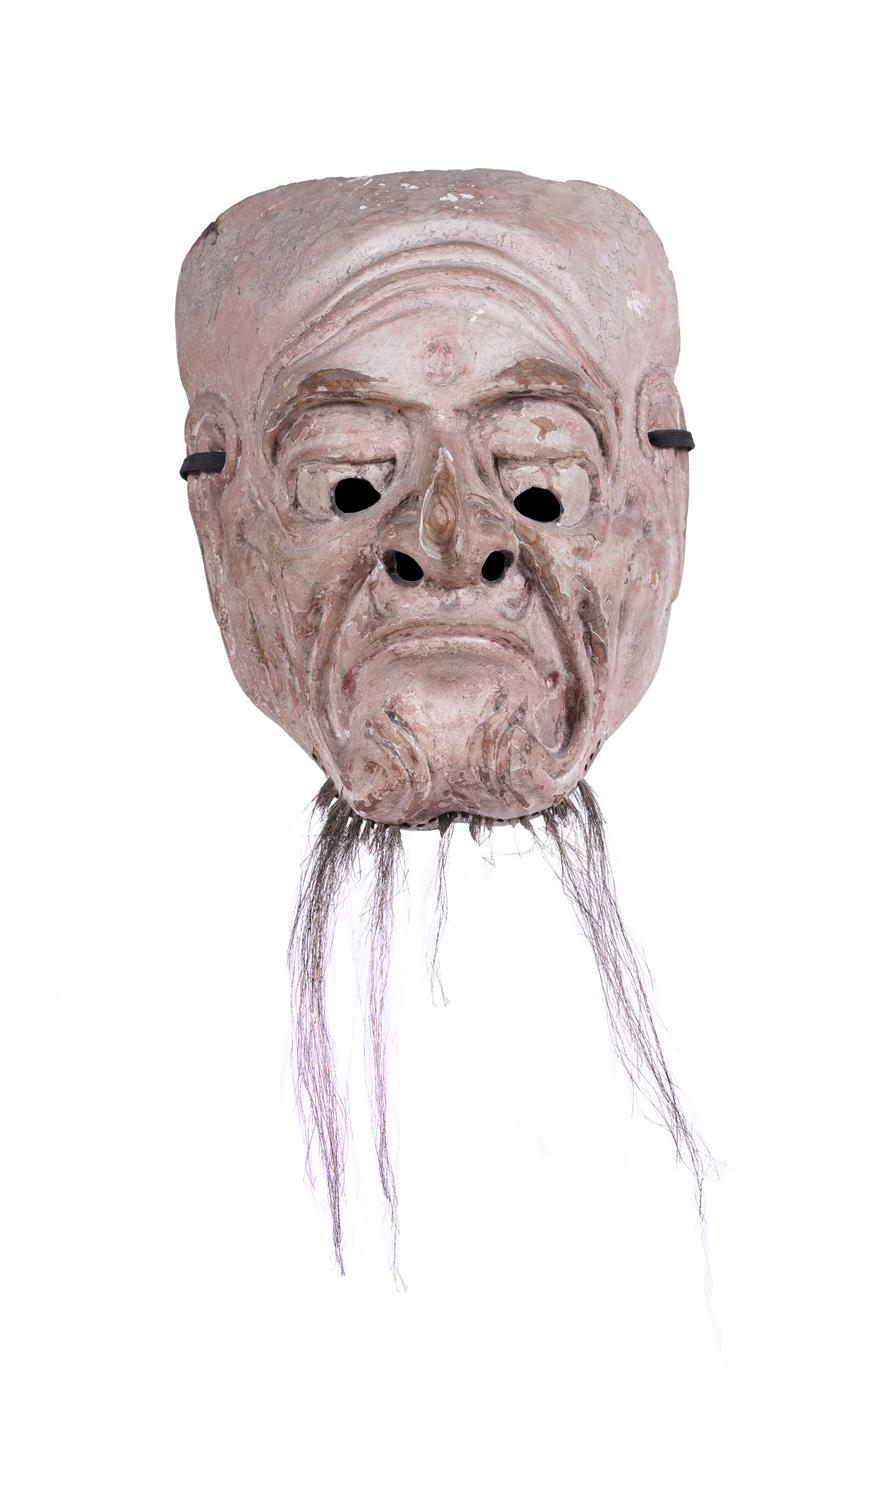 .A LACQUERED WOODEN MASK OF AN OLD MAN Japan, 19th century H: 18,2 cm - w: 14,5 cm Provenance: A - Image 3 of 4